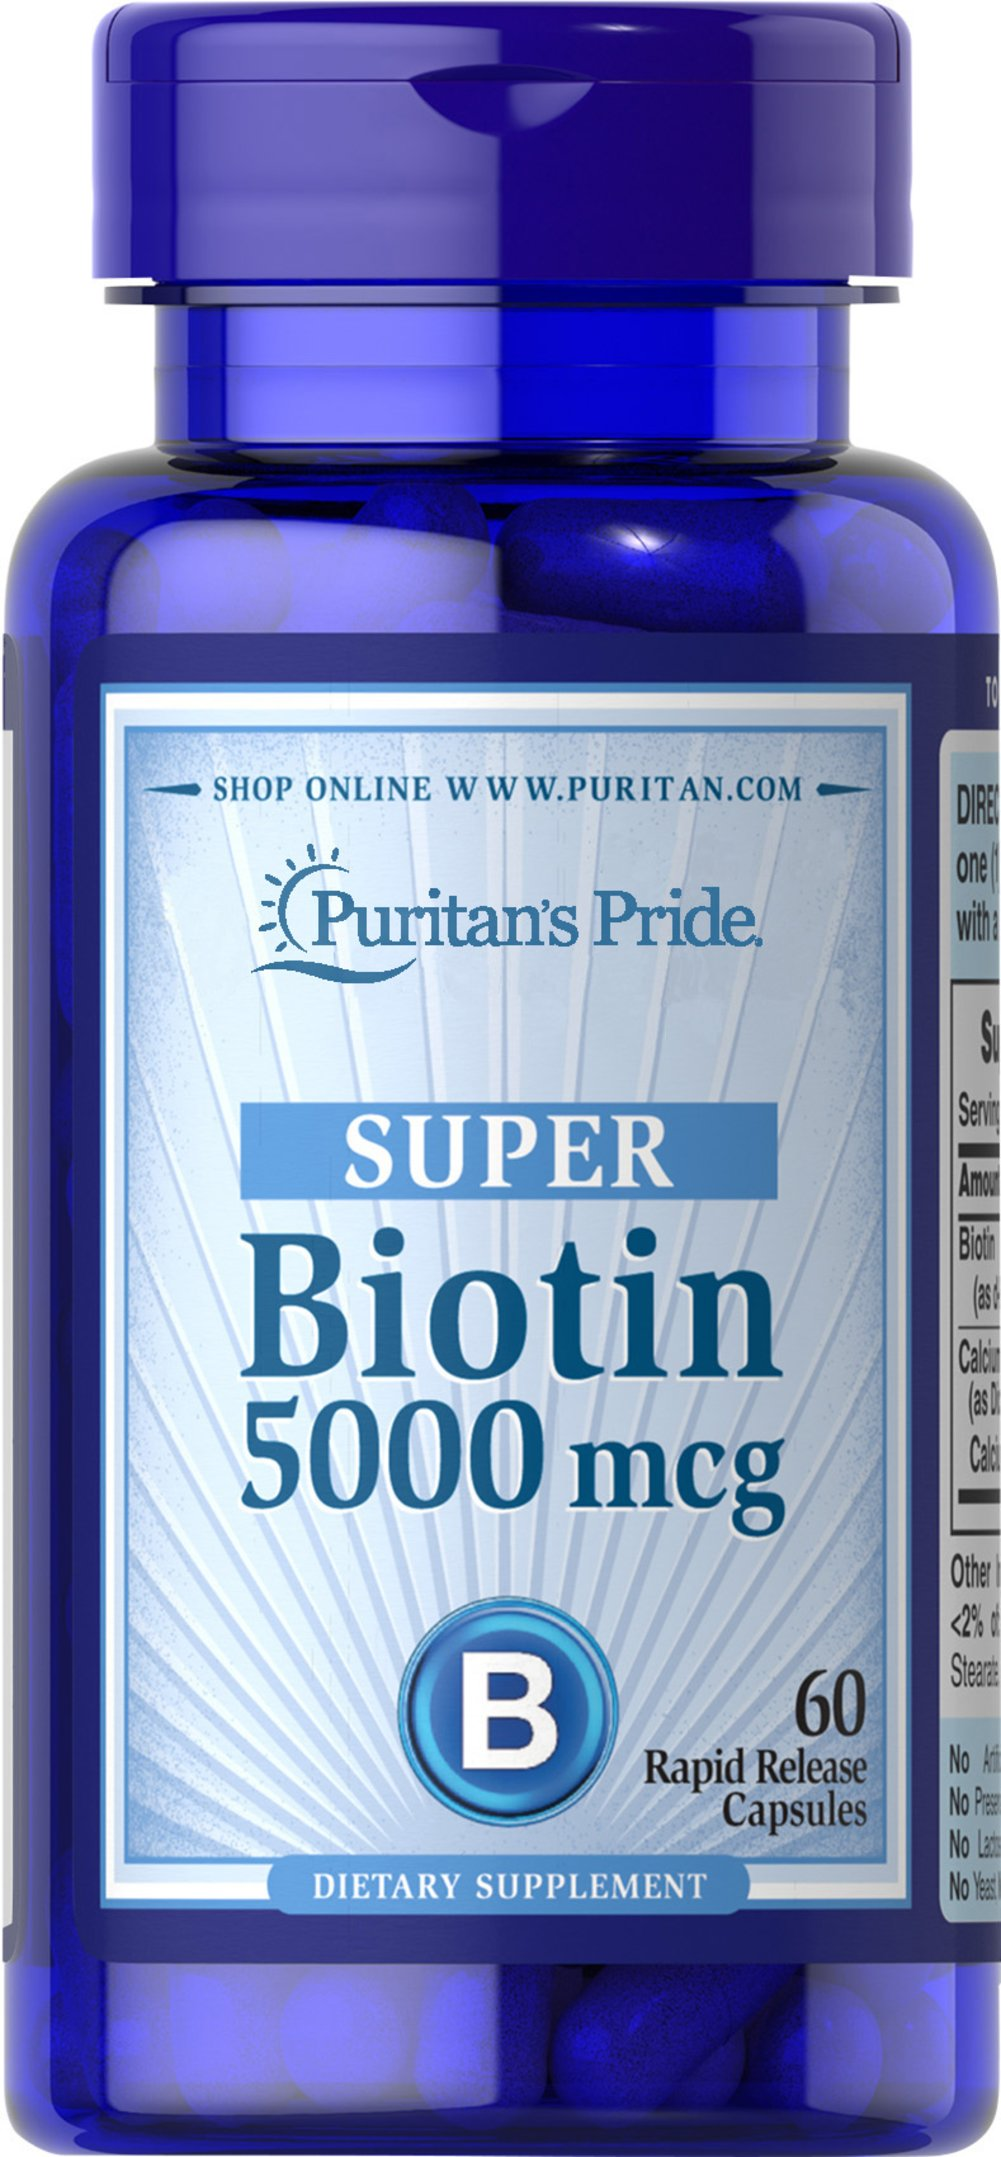 Biotin 5000 mcg <p>Biotin is a water-soluble B vitamin that can be found in foods such as oatmeal and soy. Biotin assists in energy metabolism in cells.** It is involved in certain reactions that use energy in the body.** These include reactions involved with carbohydrate and fat metabolism.** This important B vitamin helps to support healthy skin, hair and nails so you can look and feel your best.**</p><p></p><p></p> 60 Capsules 5000 mcg $6.99